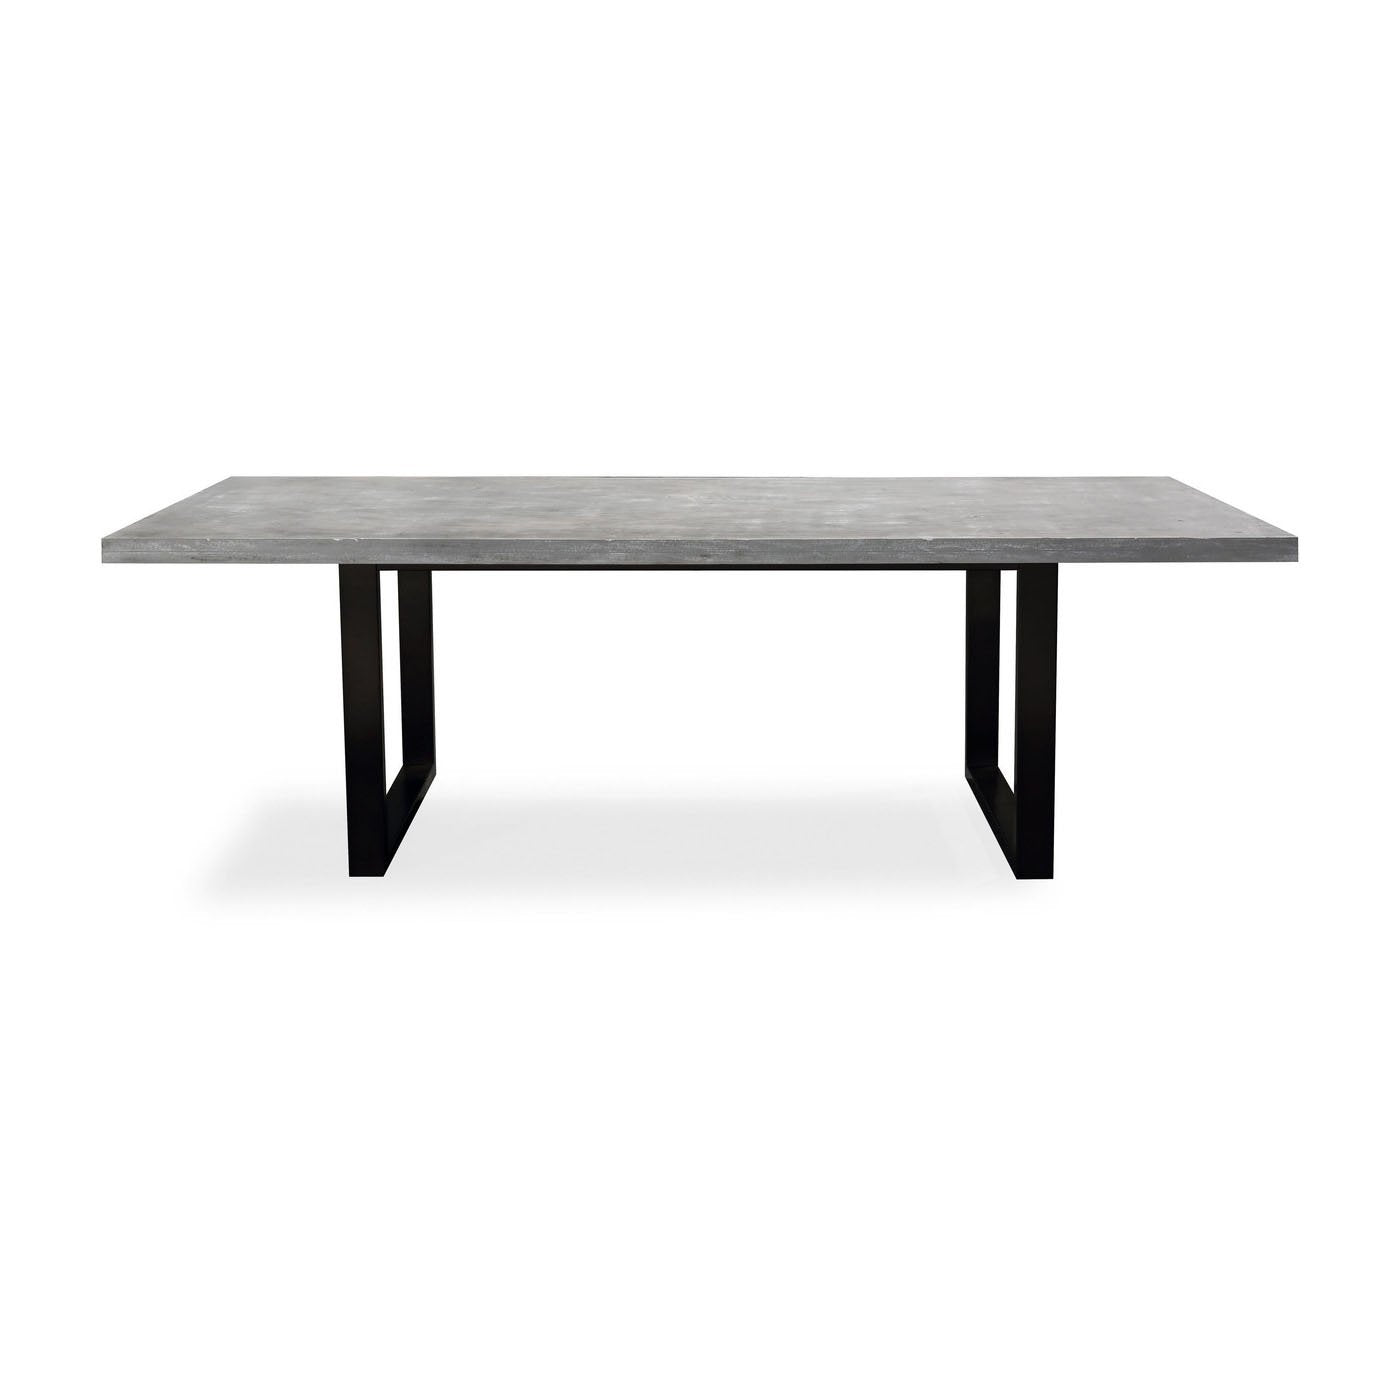 Tov-Urban Veneer Table-Dining Tables-MODTEMPO